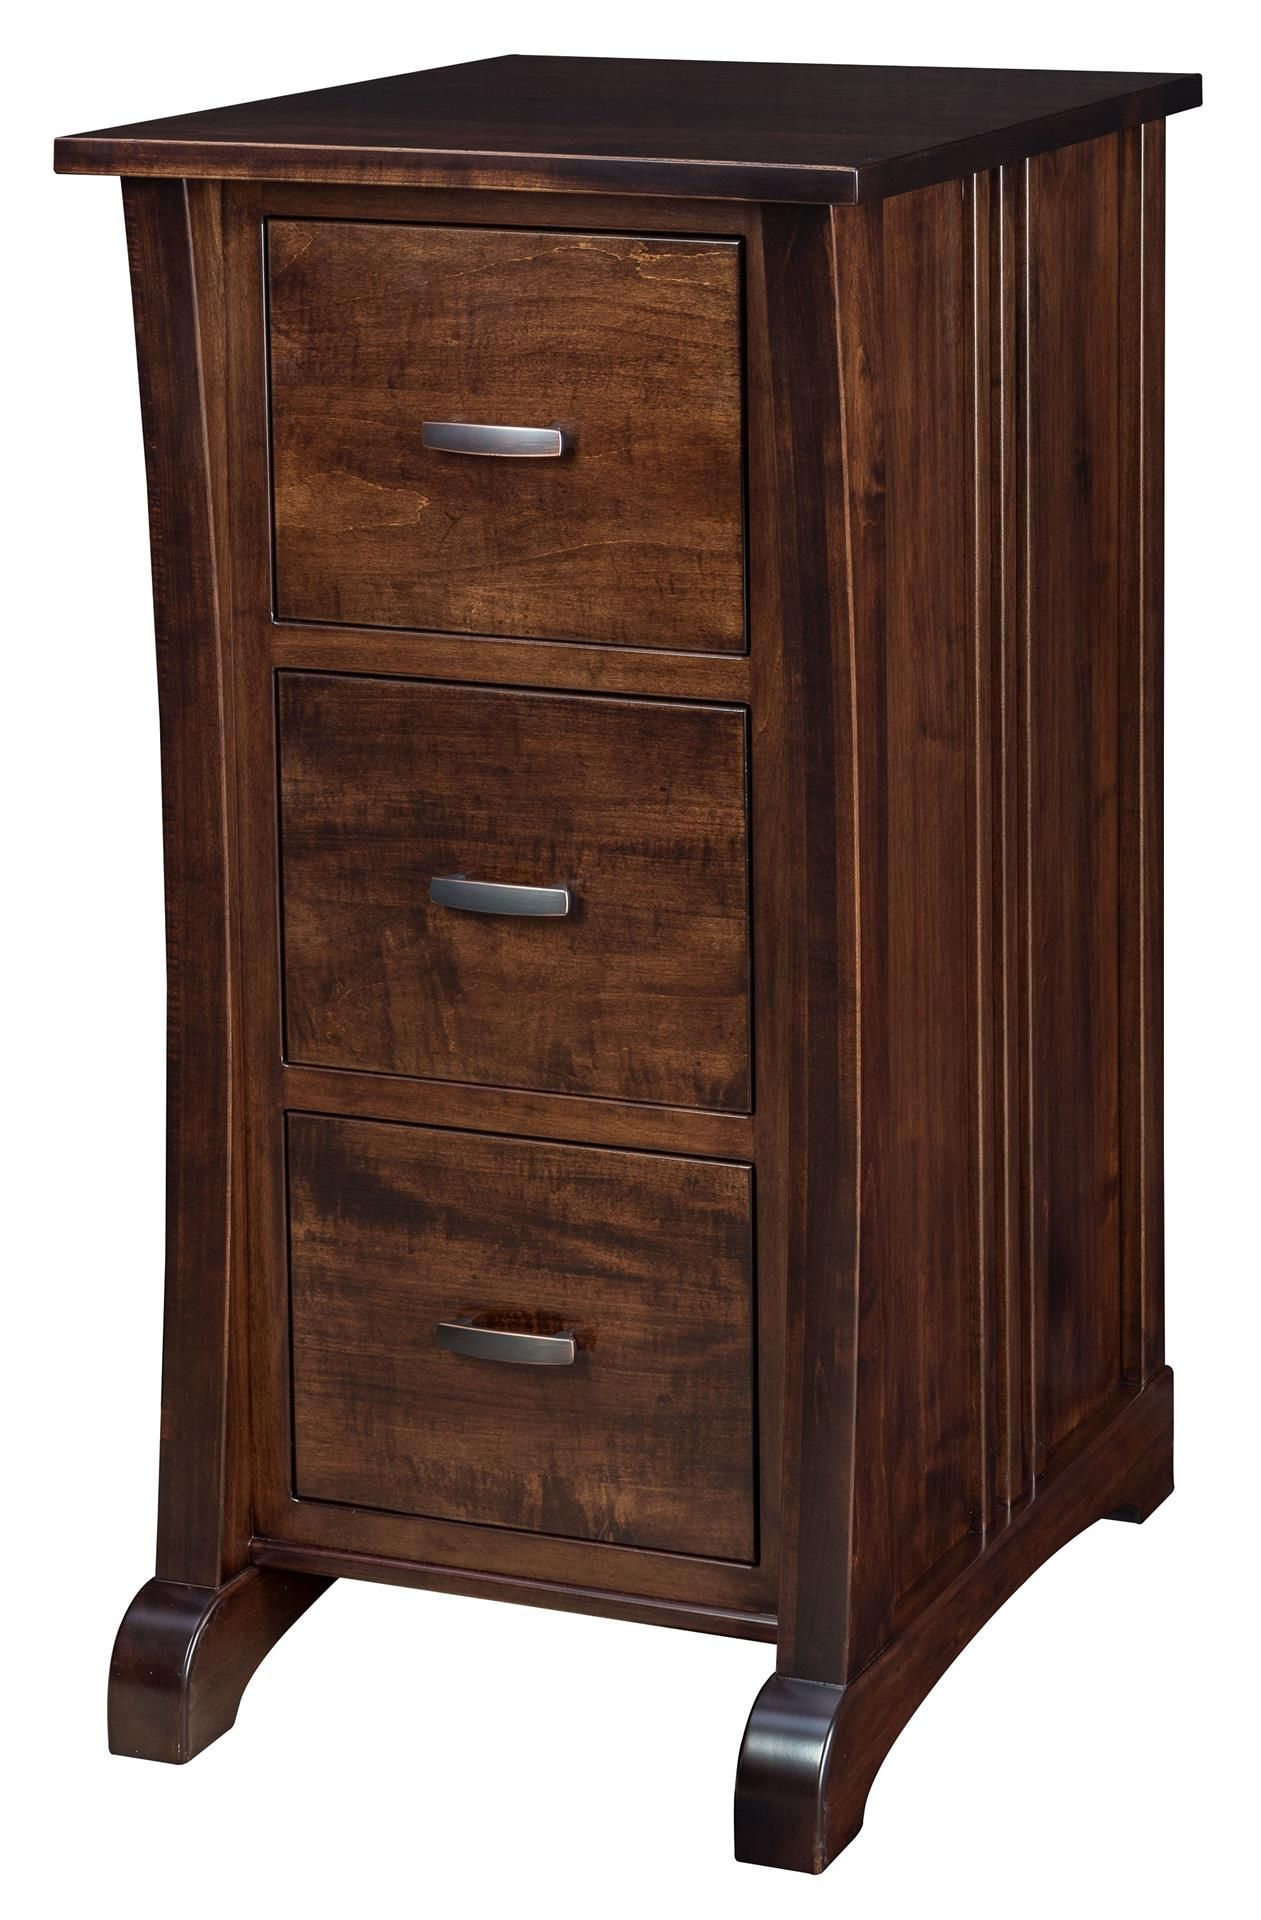 Amish Harmony File Cabinet Filing Cabinet Transitional Decor Transitional Home Decor